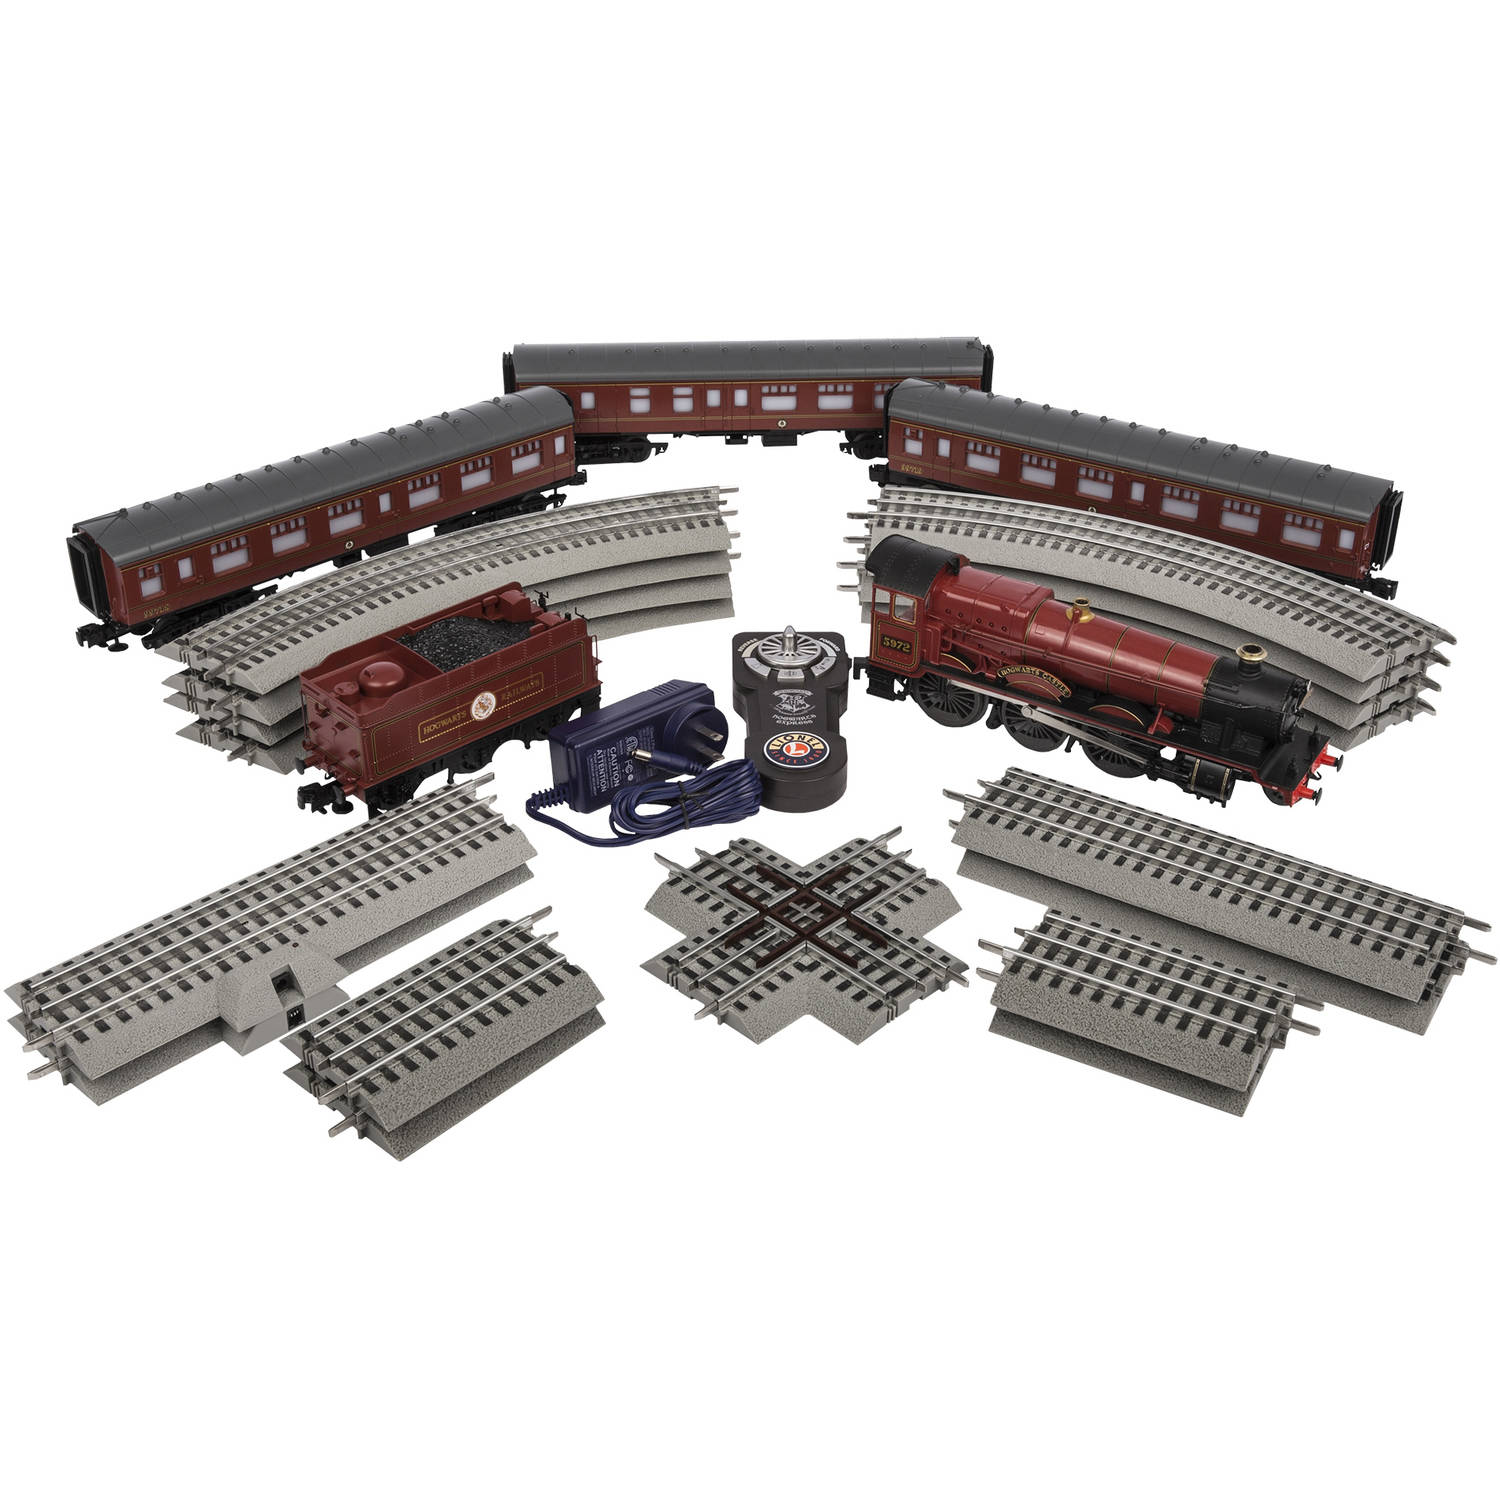 Lionel Trains Hogwarts Set with O Gauge Value Pack by Lionel Trains